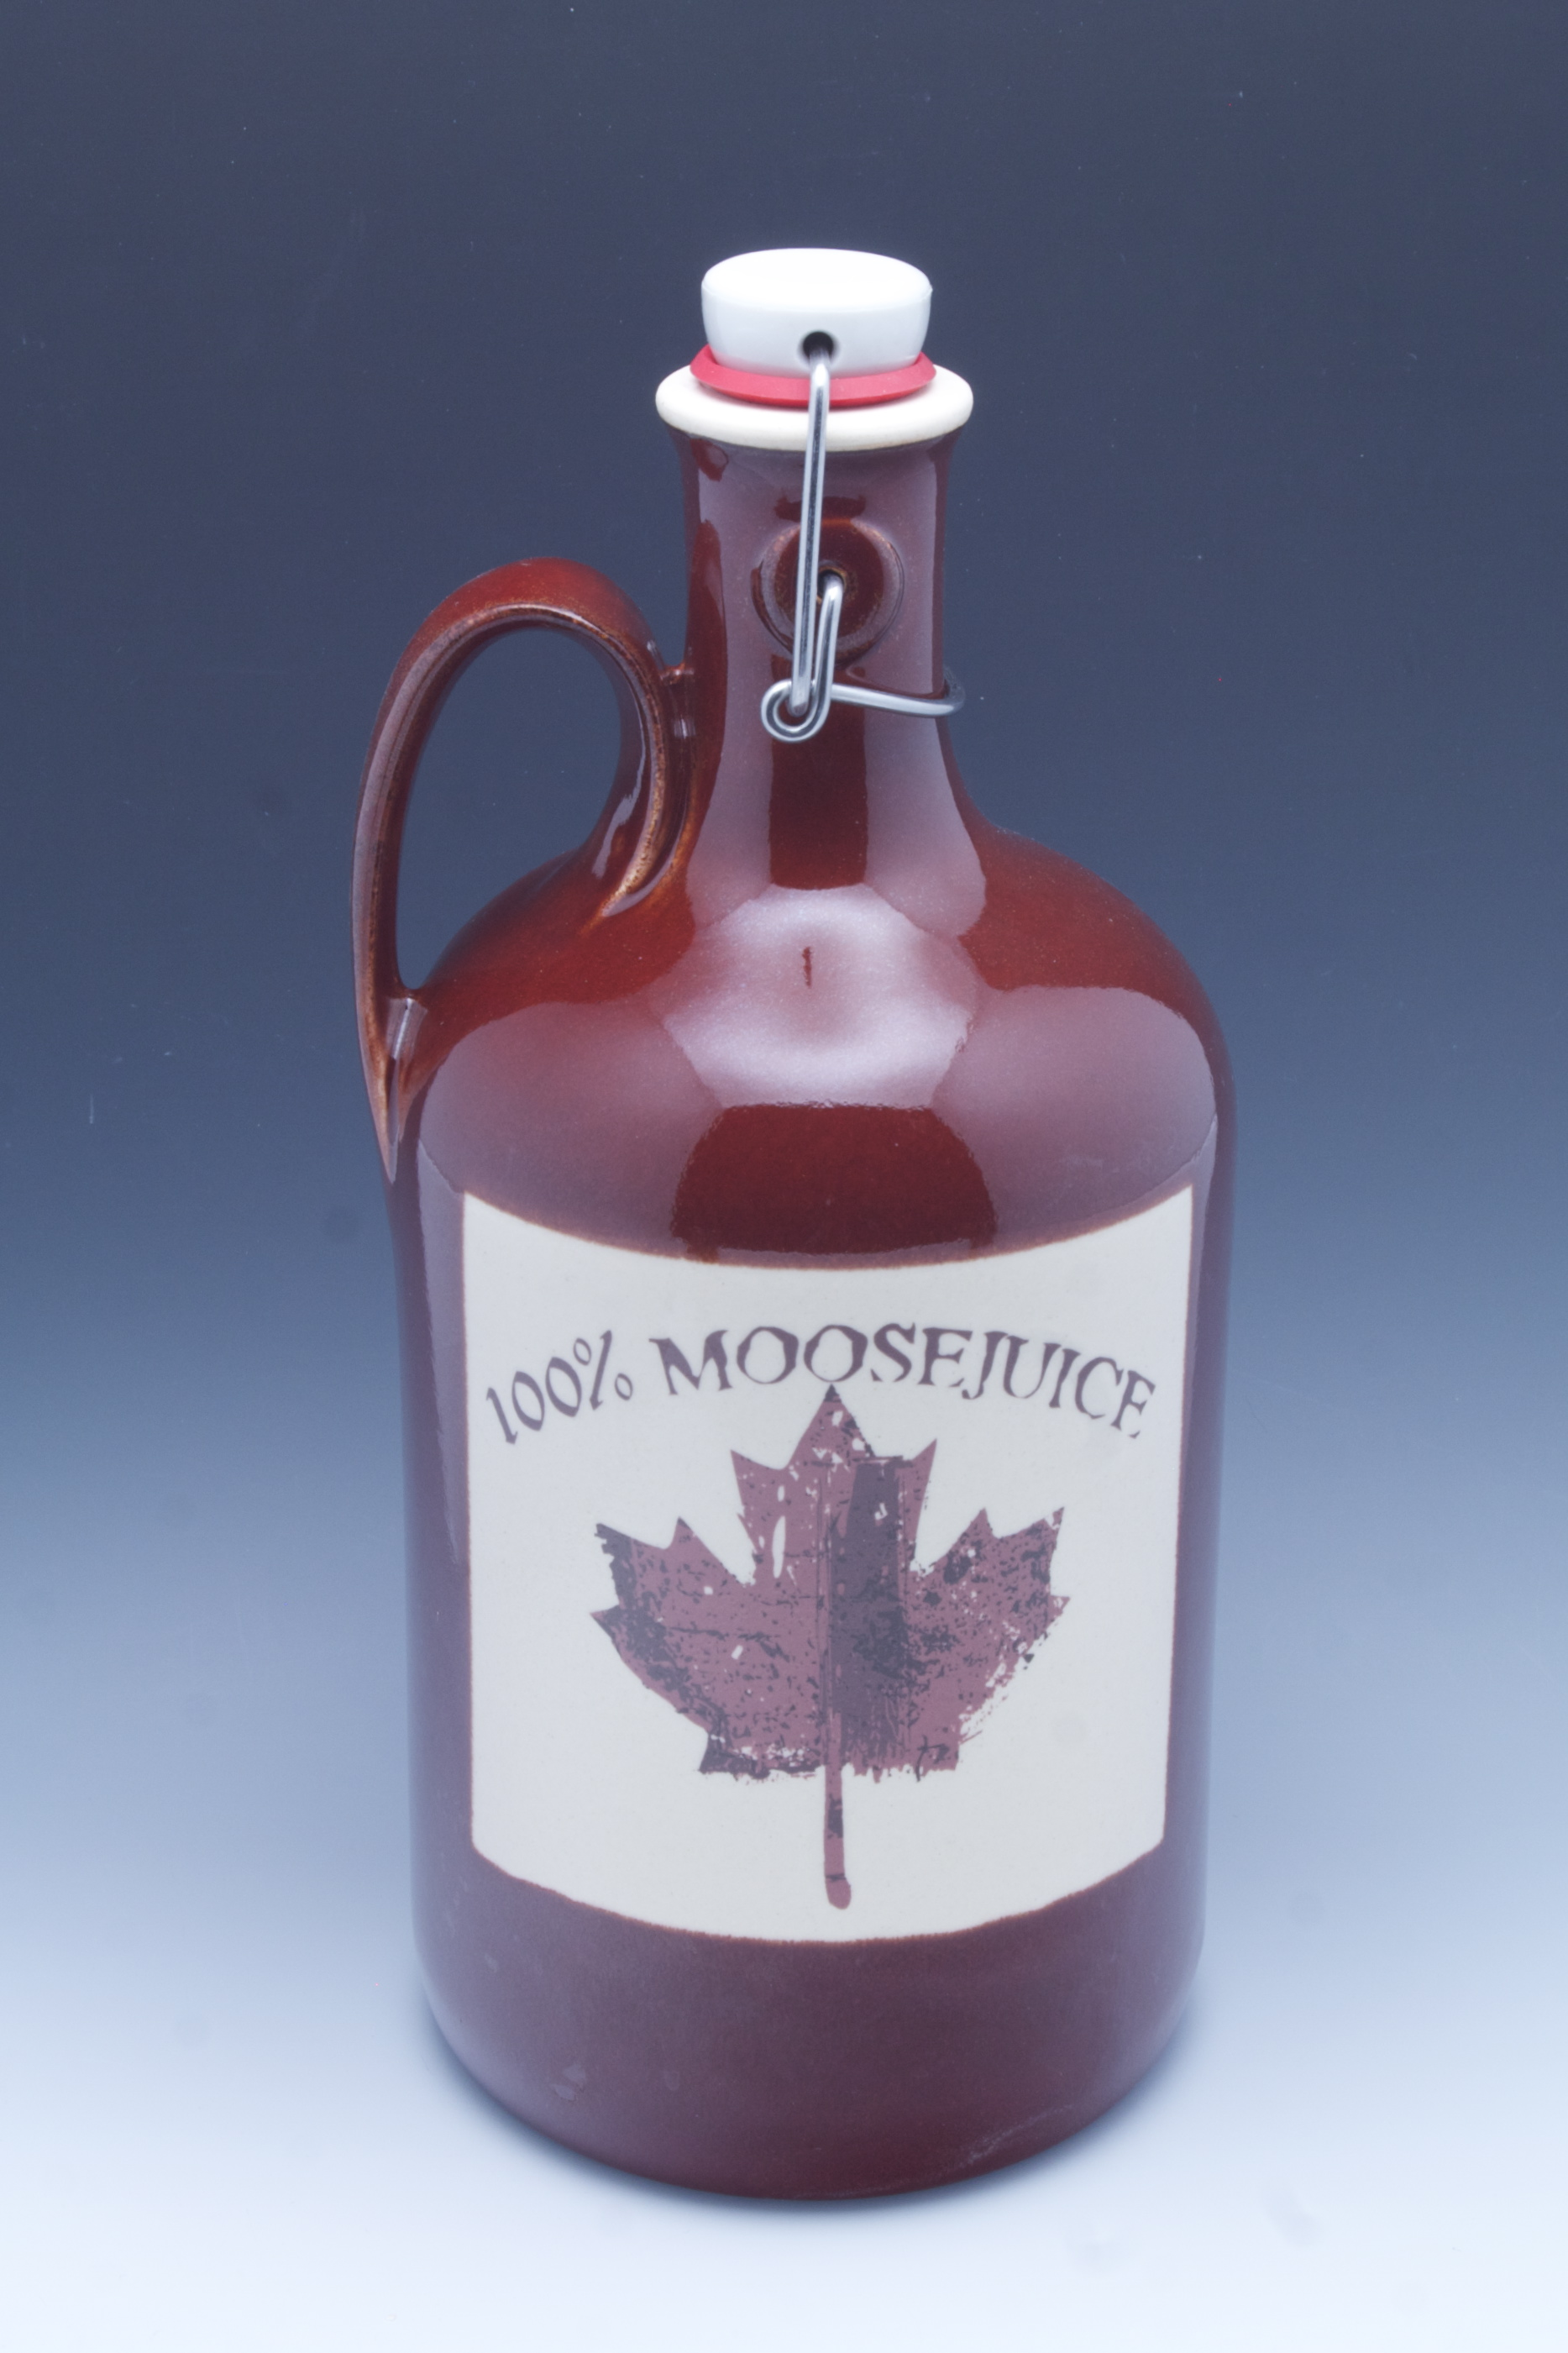 You can get your own custom handmade Growler from Carlburg Pottery in Montana: www.handmadegrowlers.com